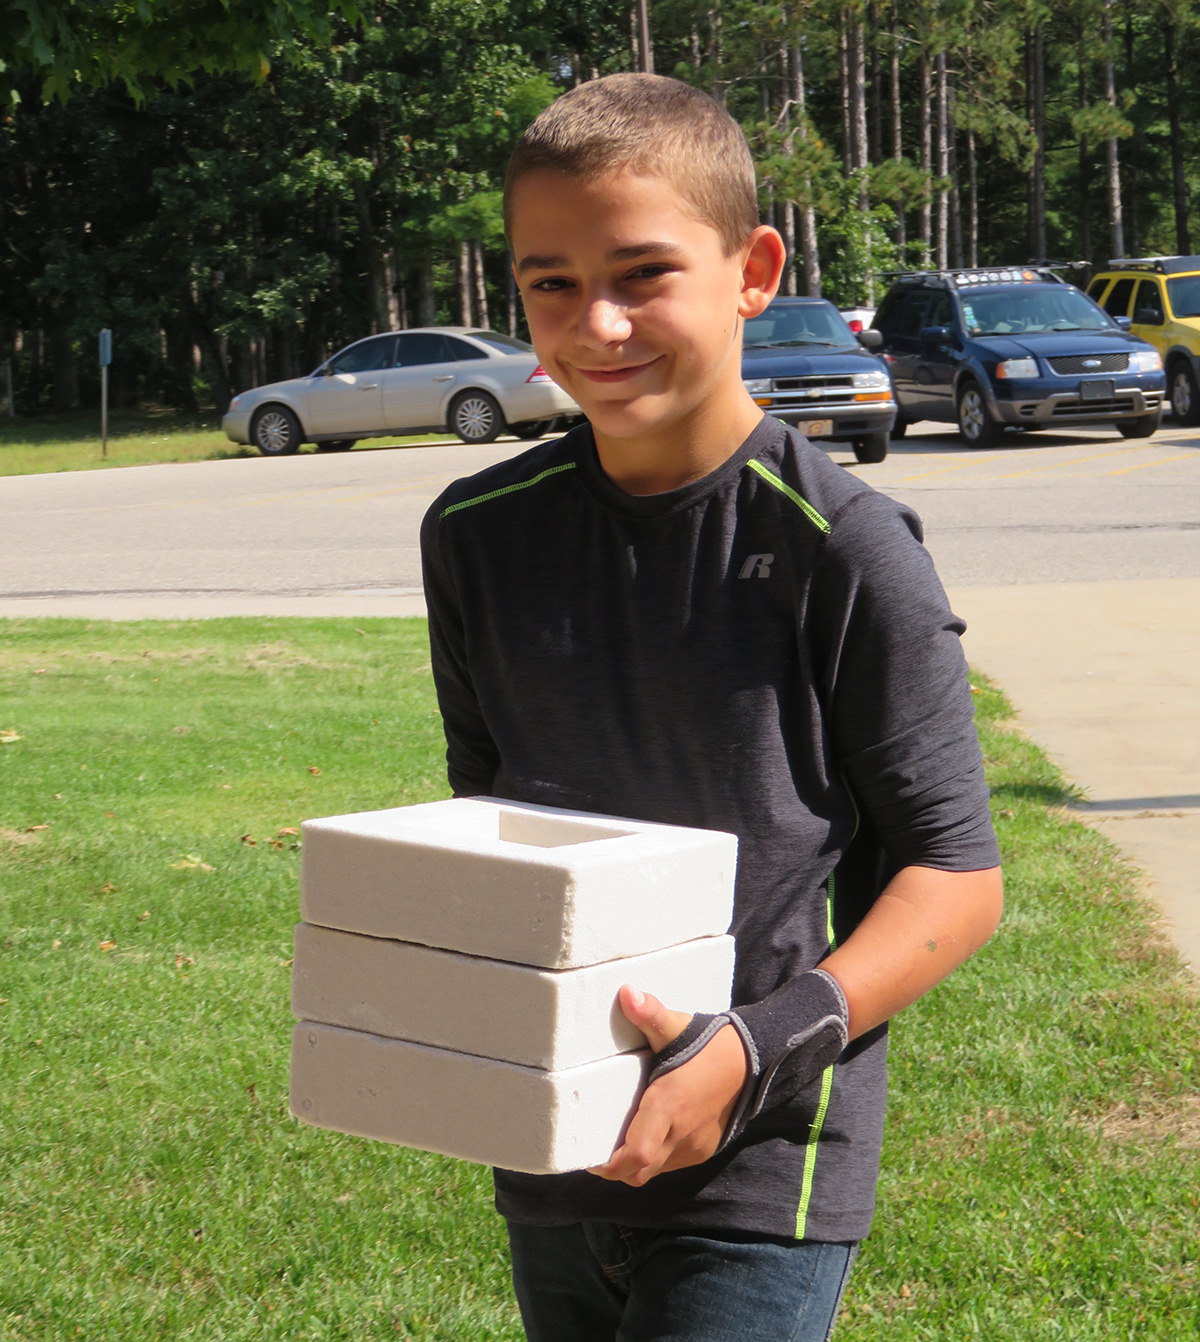 Helpful student carrying scratch blocks